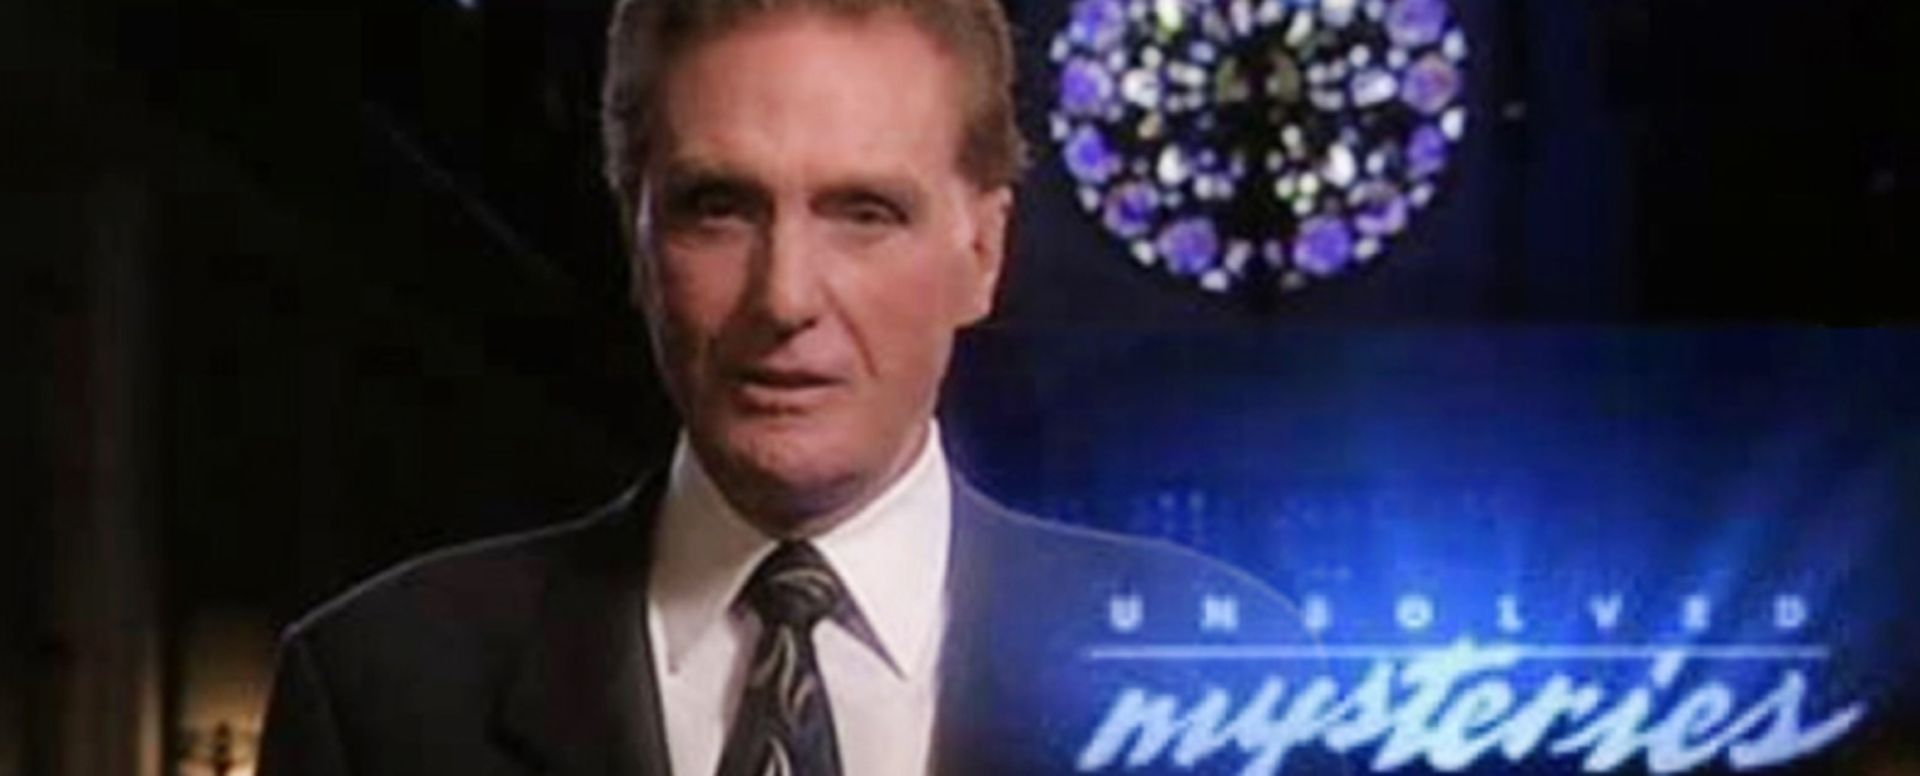 Unsolved Mysteries Volume 2 release date